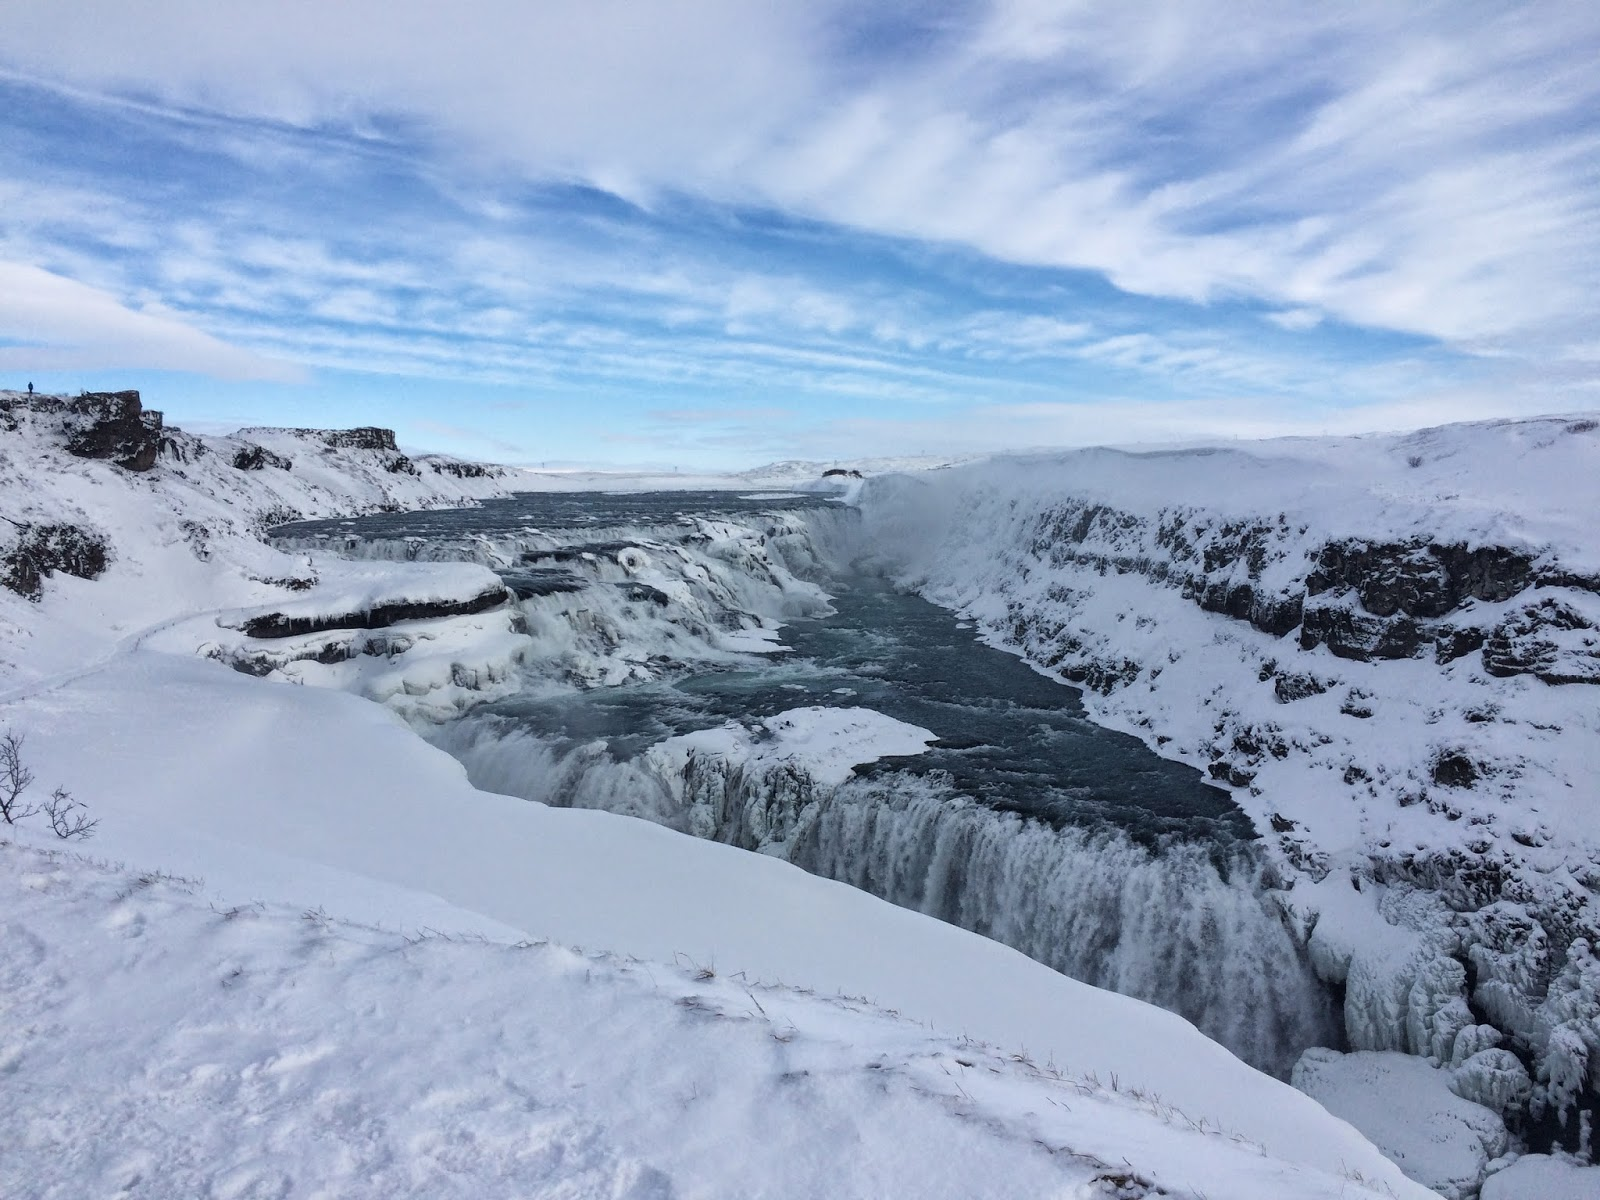 The Gullfoss waterfall - Golden Circle tour - Iceland, 2015